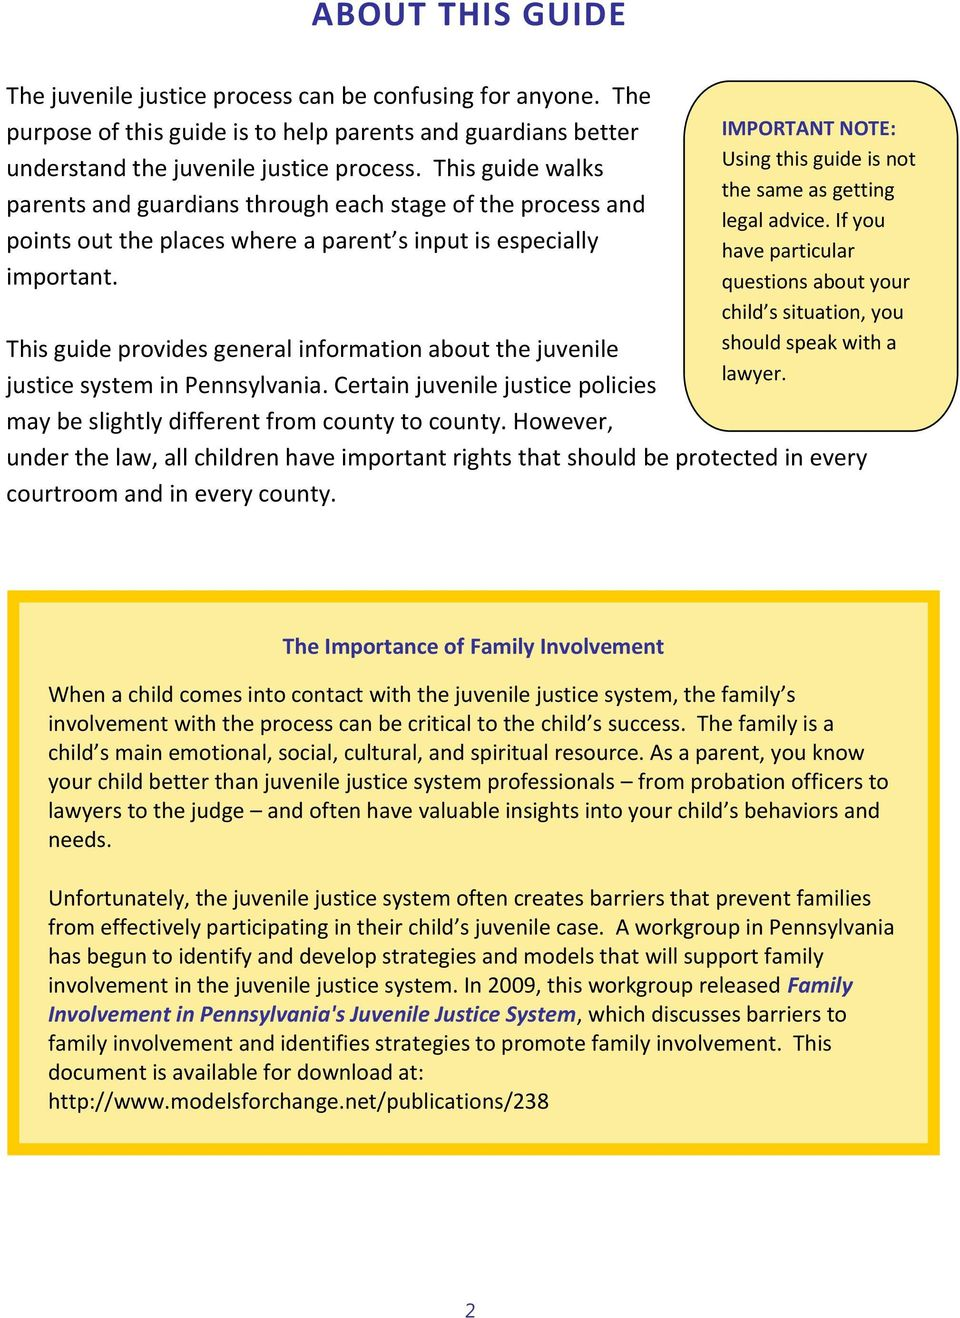 This guide provides general information about the juvenile justice system in Pennsylvania. Certain juvenile justice policies may be slightly different from county to county.